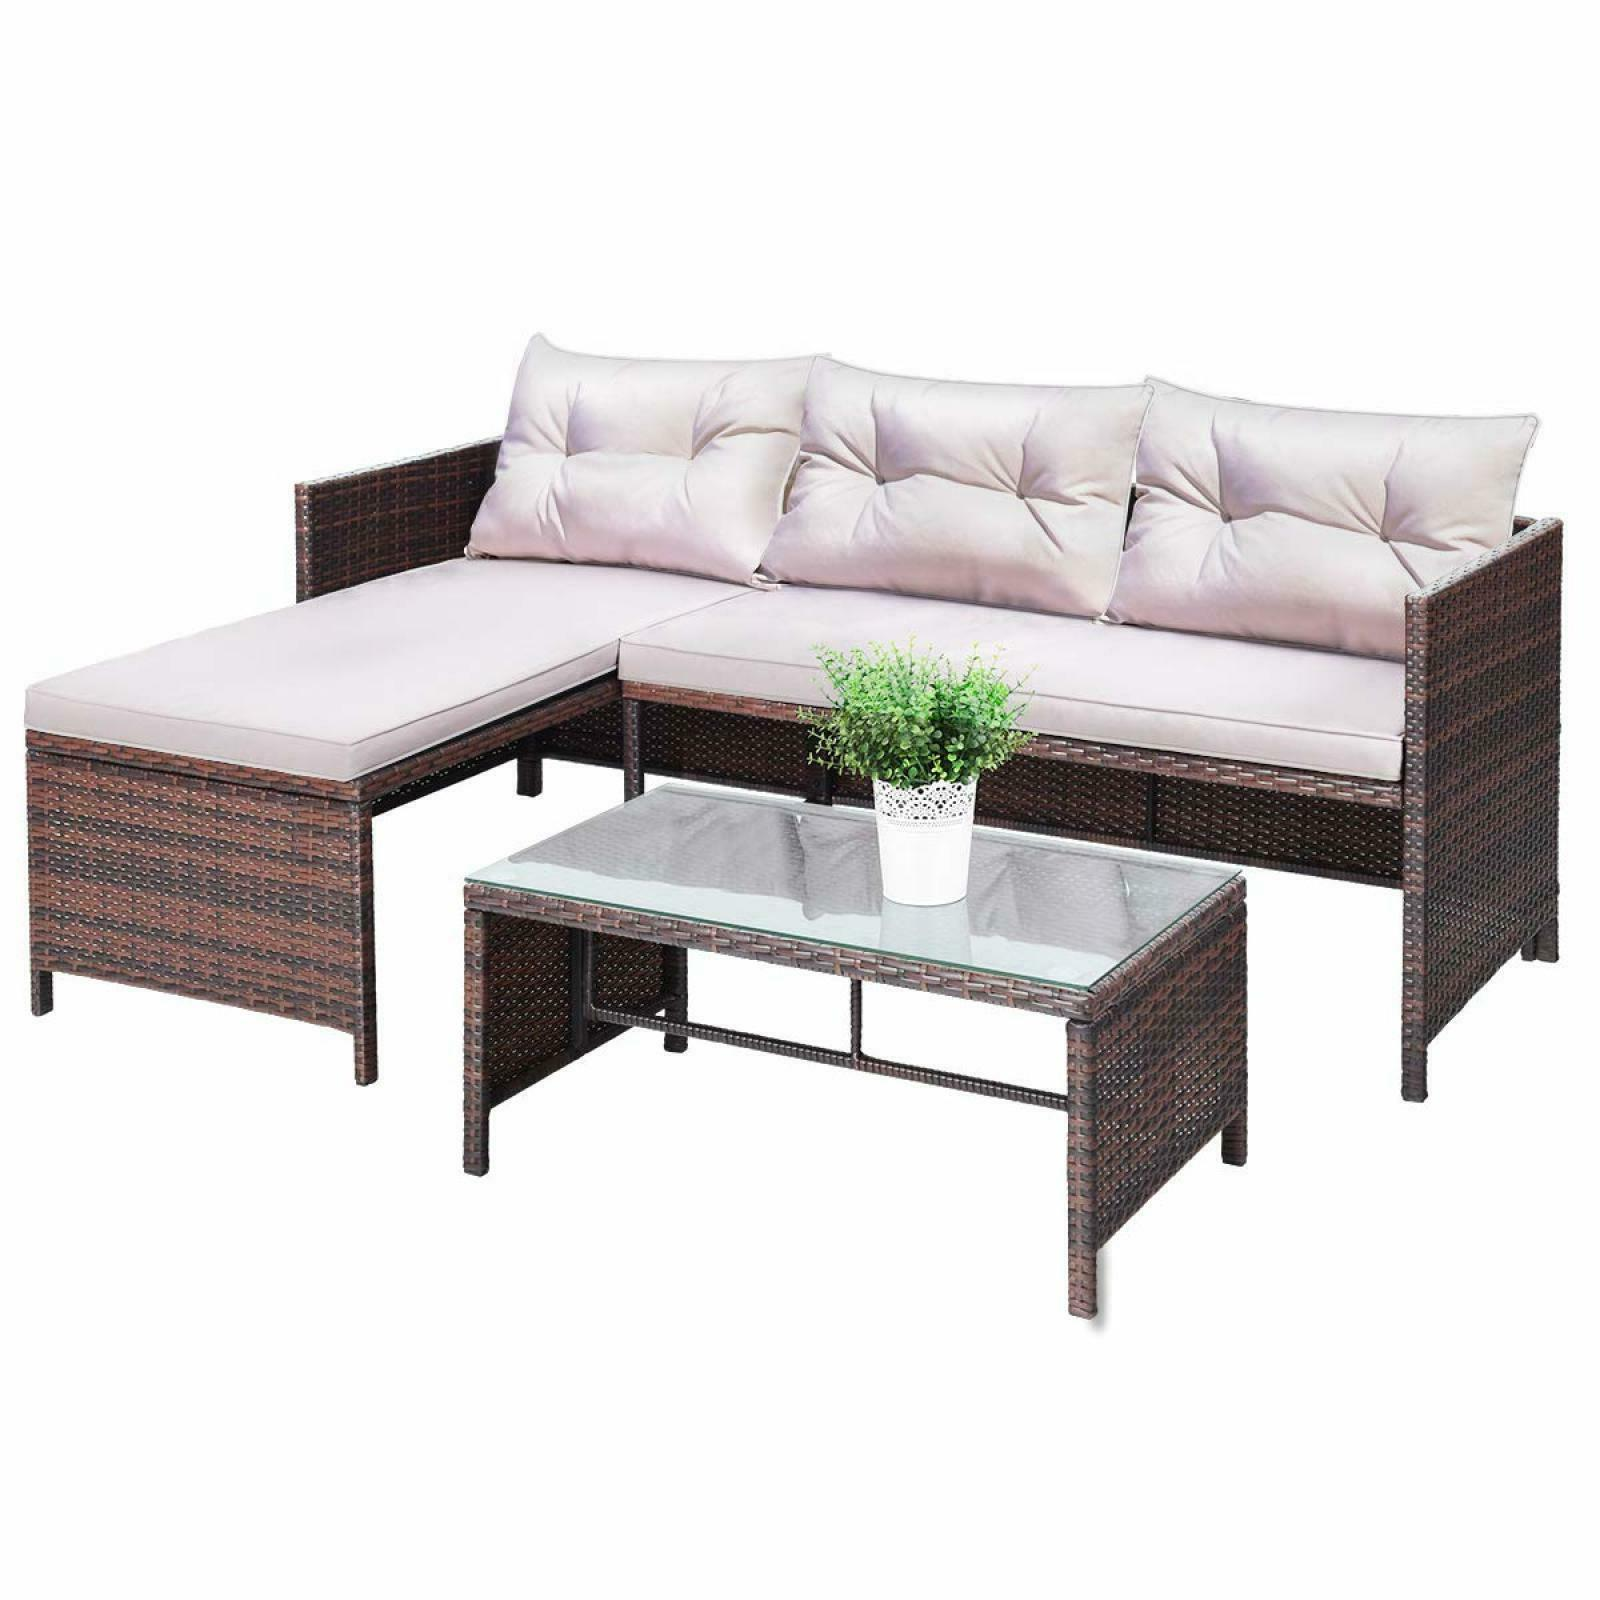 Outdoor Rattan Furniture Sectional Set of 3 Chaise Cushion P